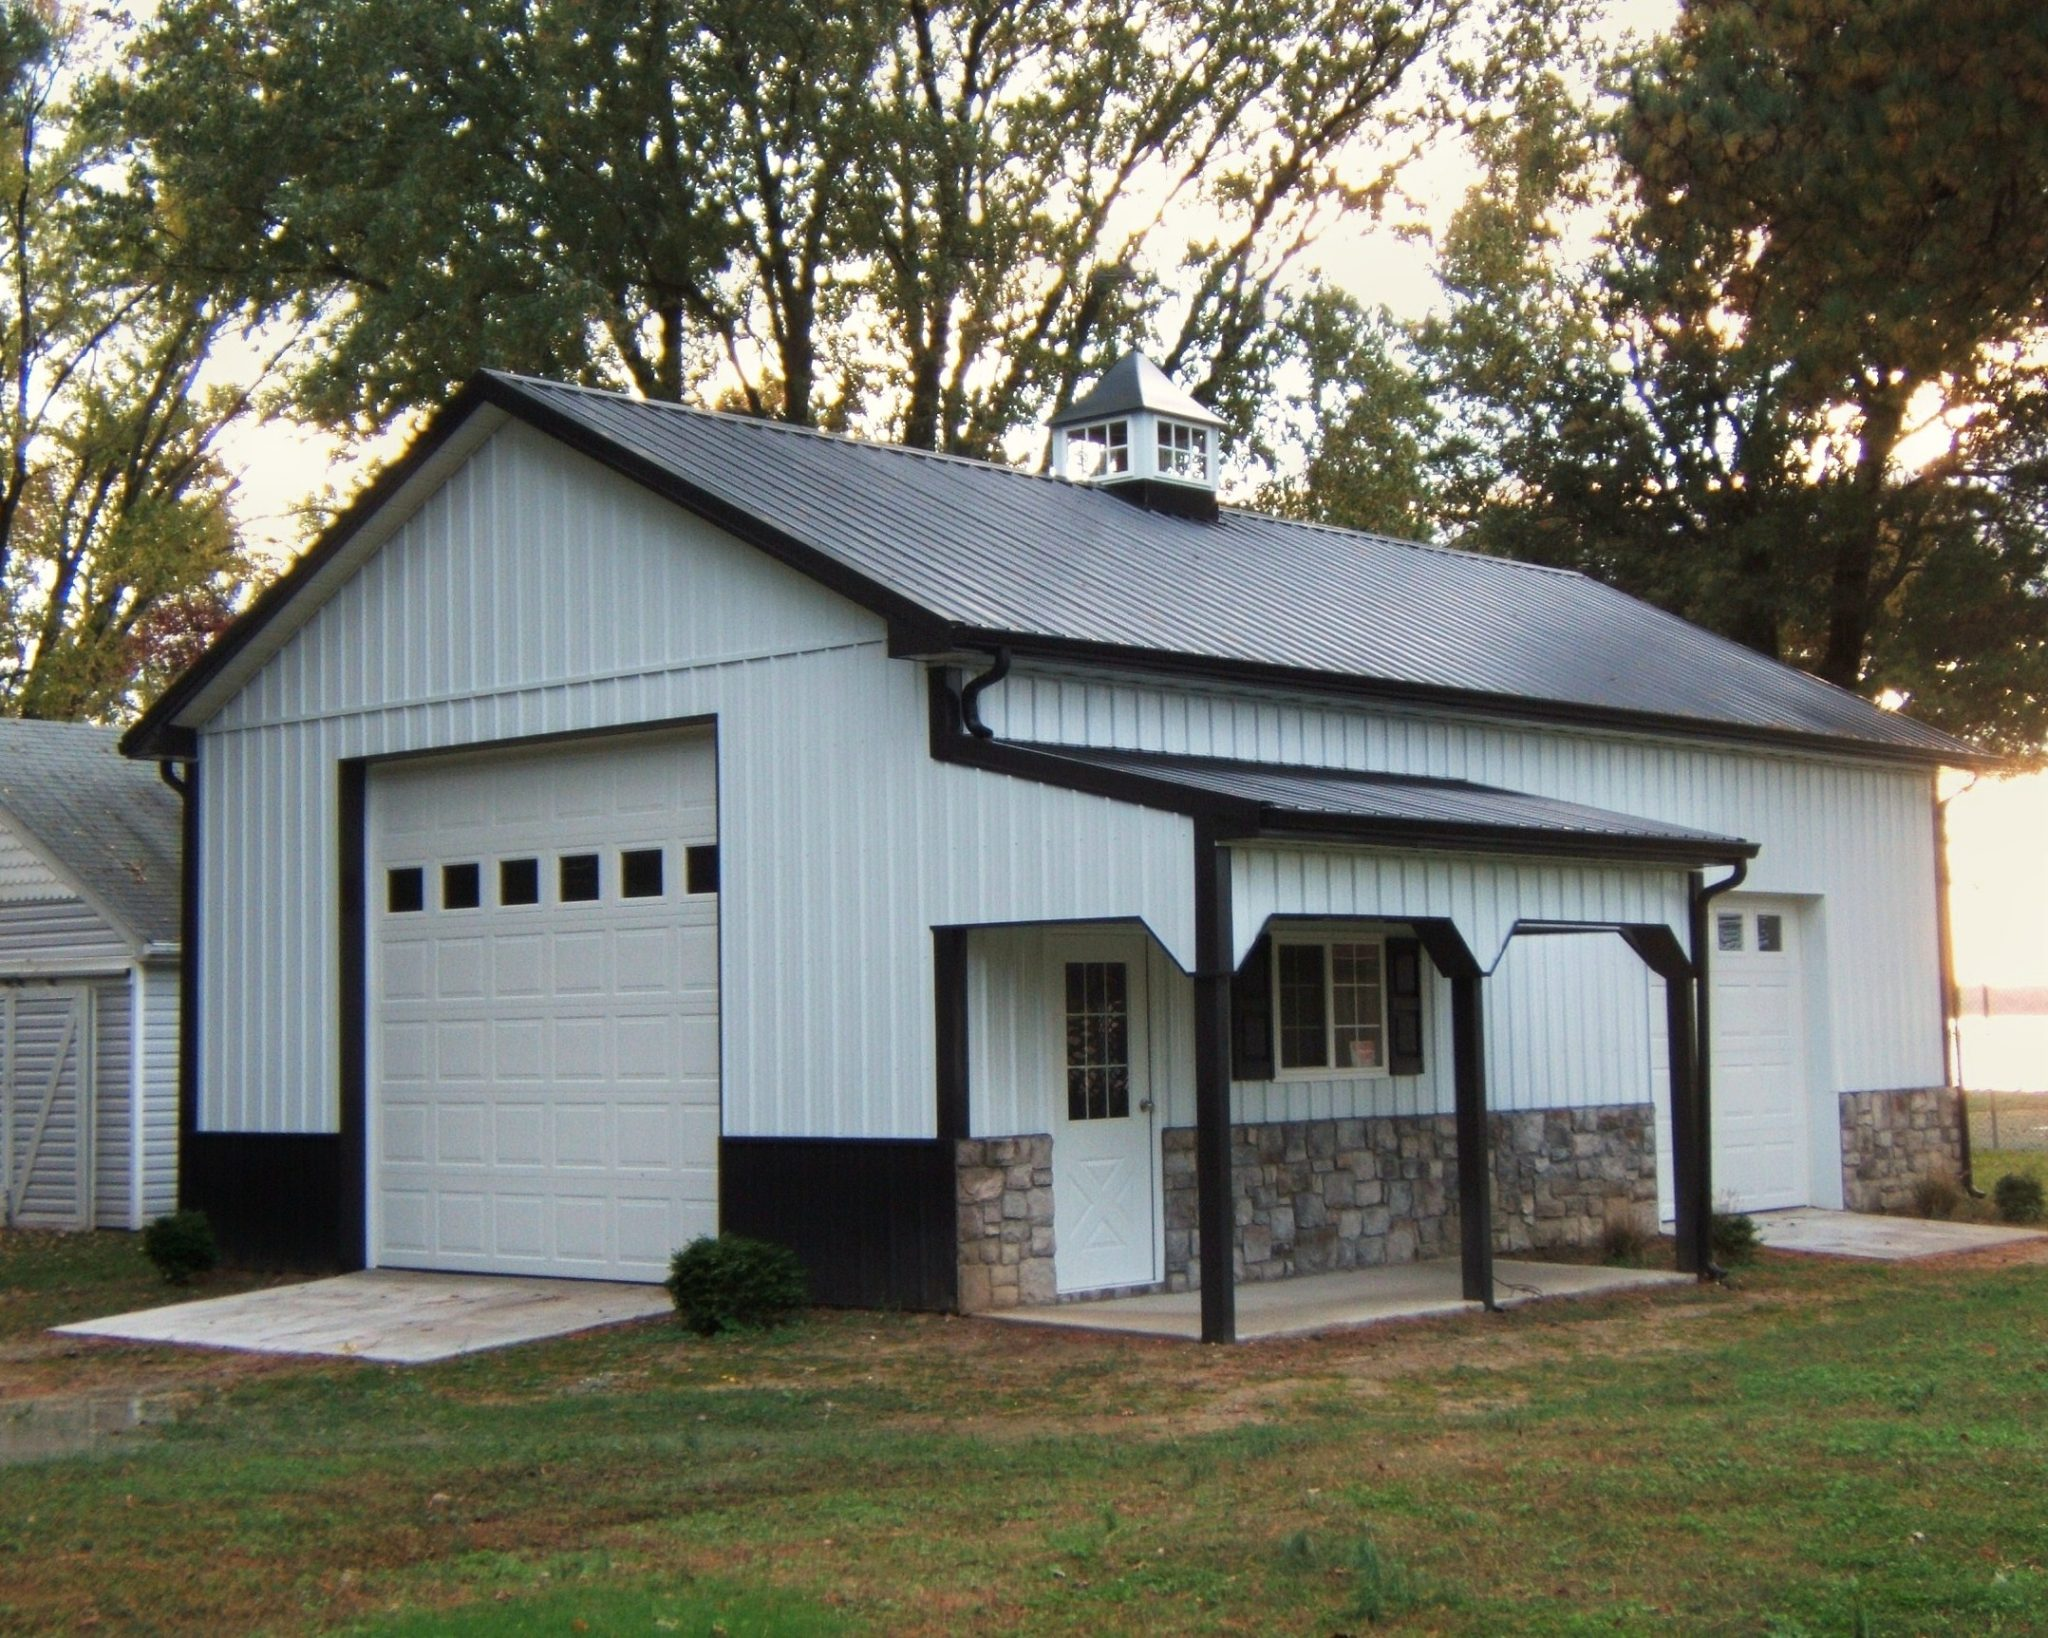 Gambrel Roof Pictures Residential Roofing Amp Siding Fs Construction Services